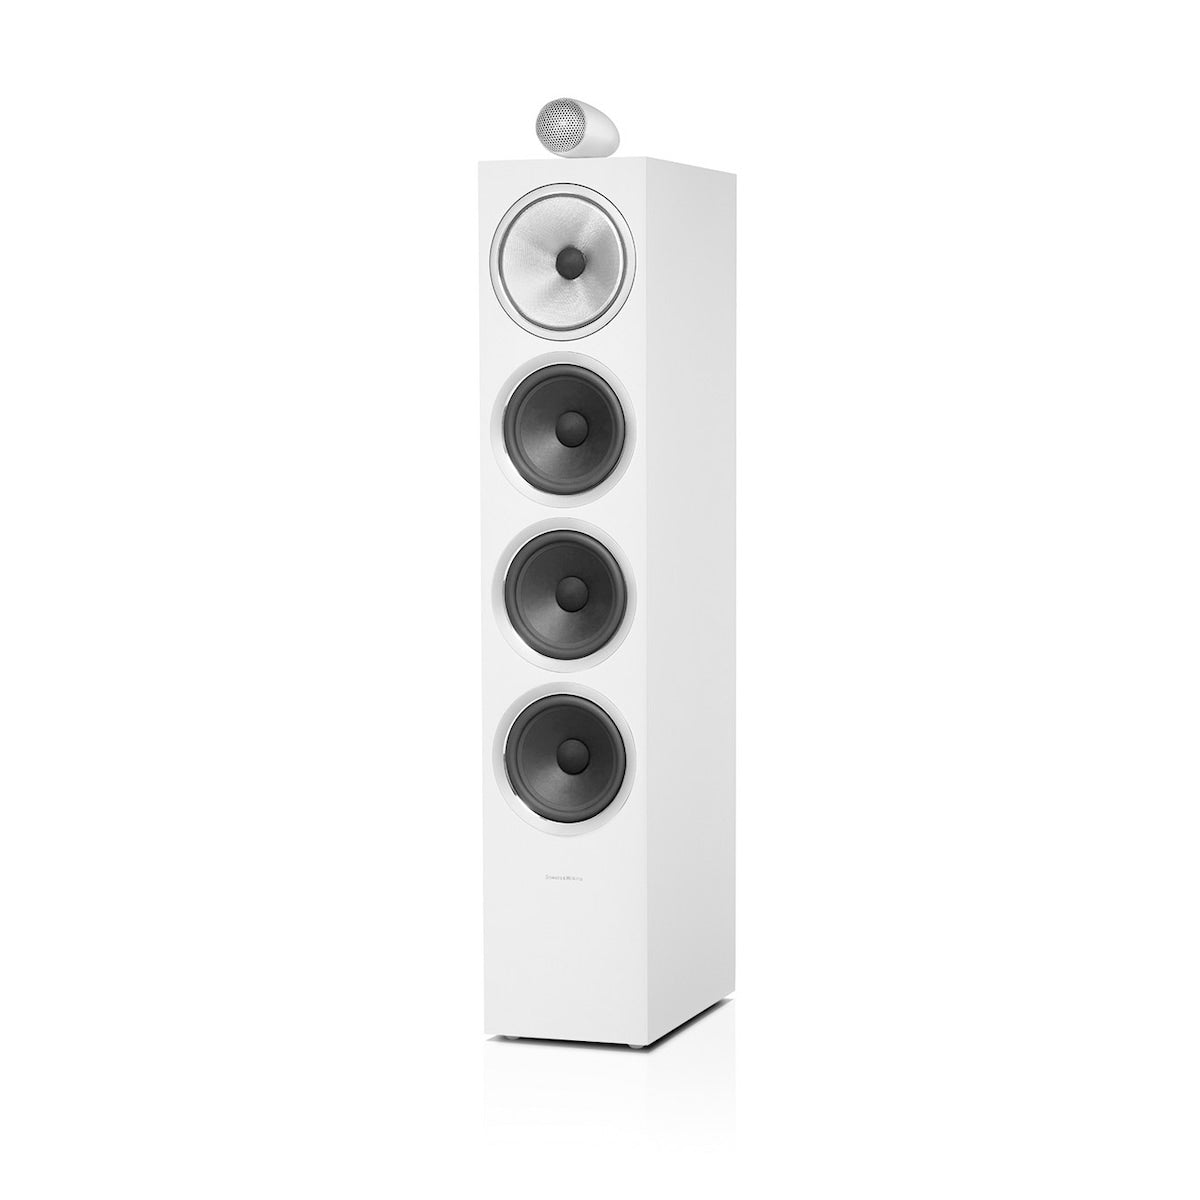 Bowers & Wilkins 702 S2 - Floor Standing Speaker - Pair